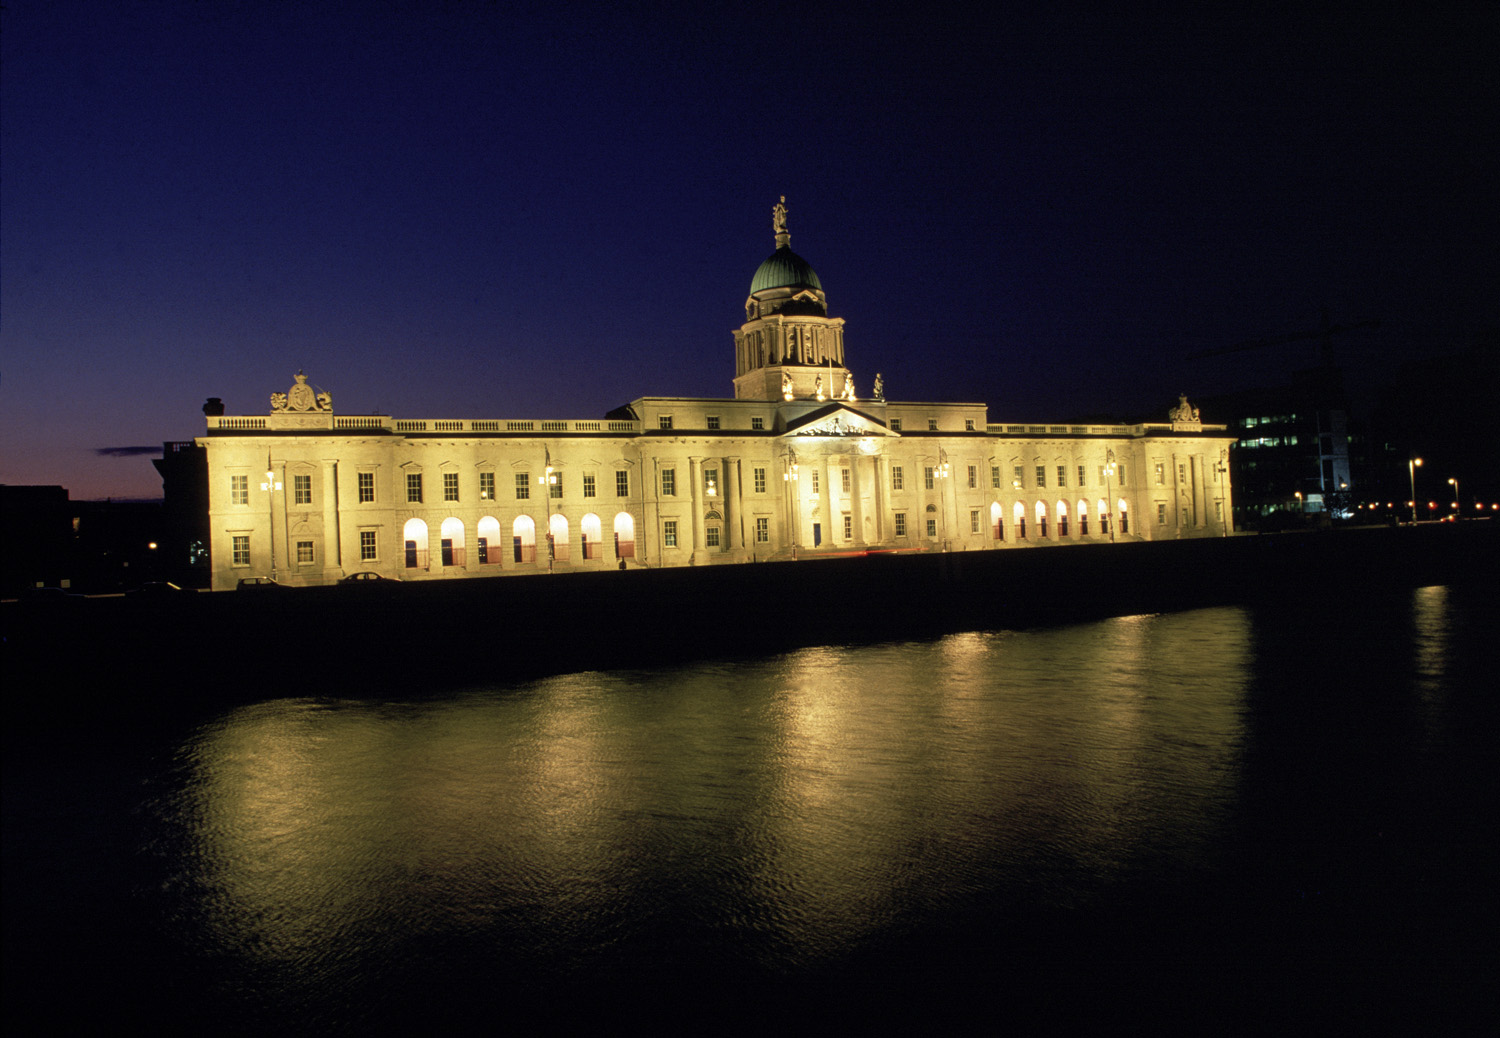 STart your tour in DUblin